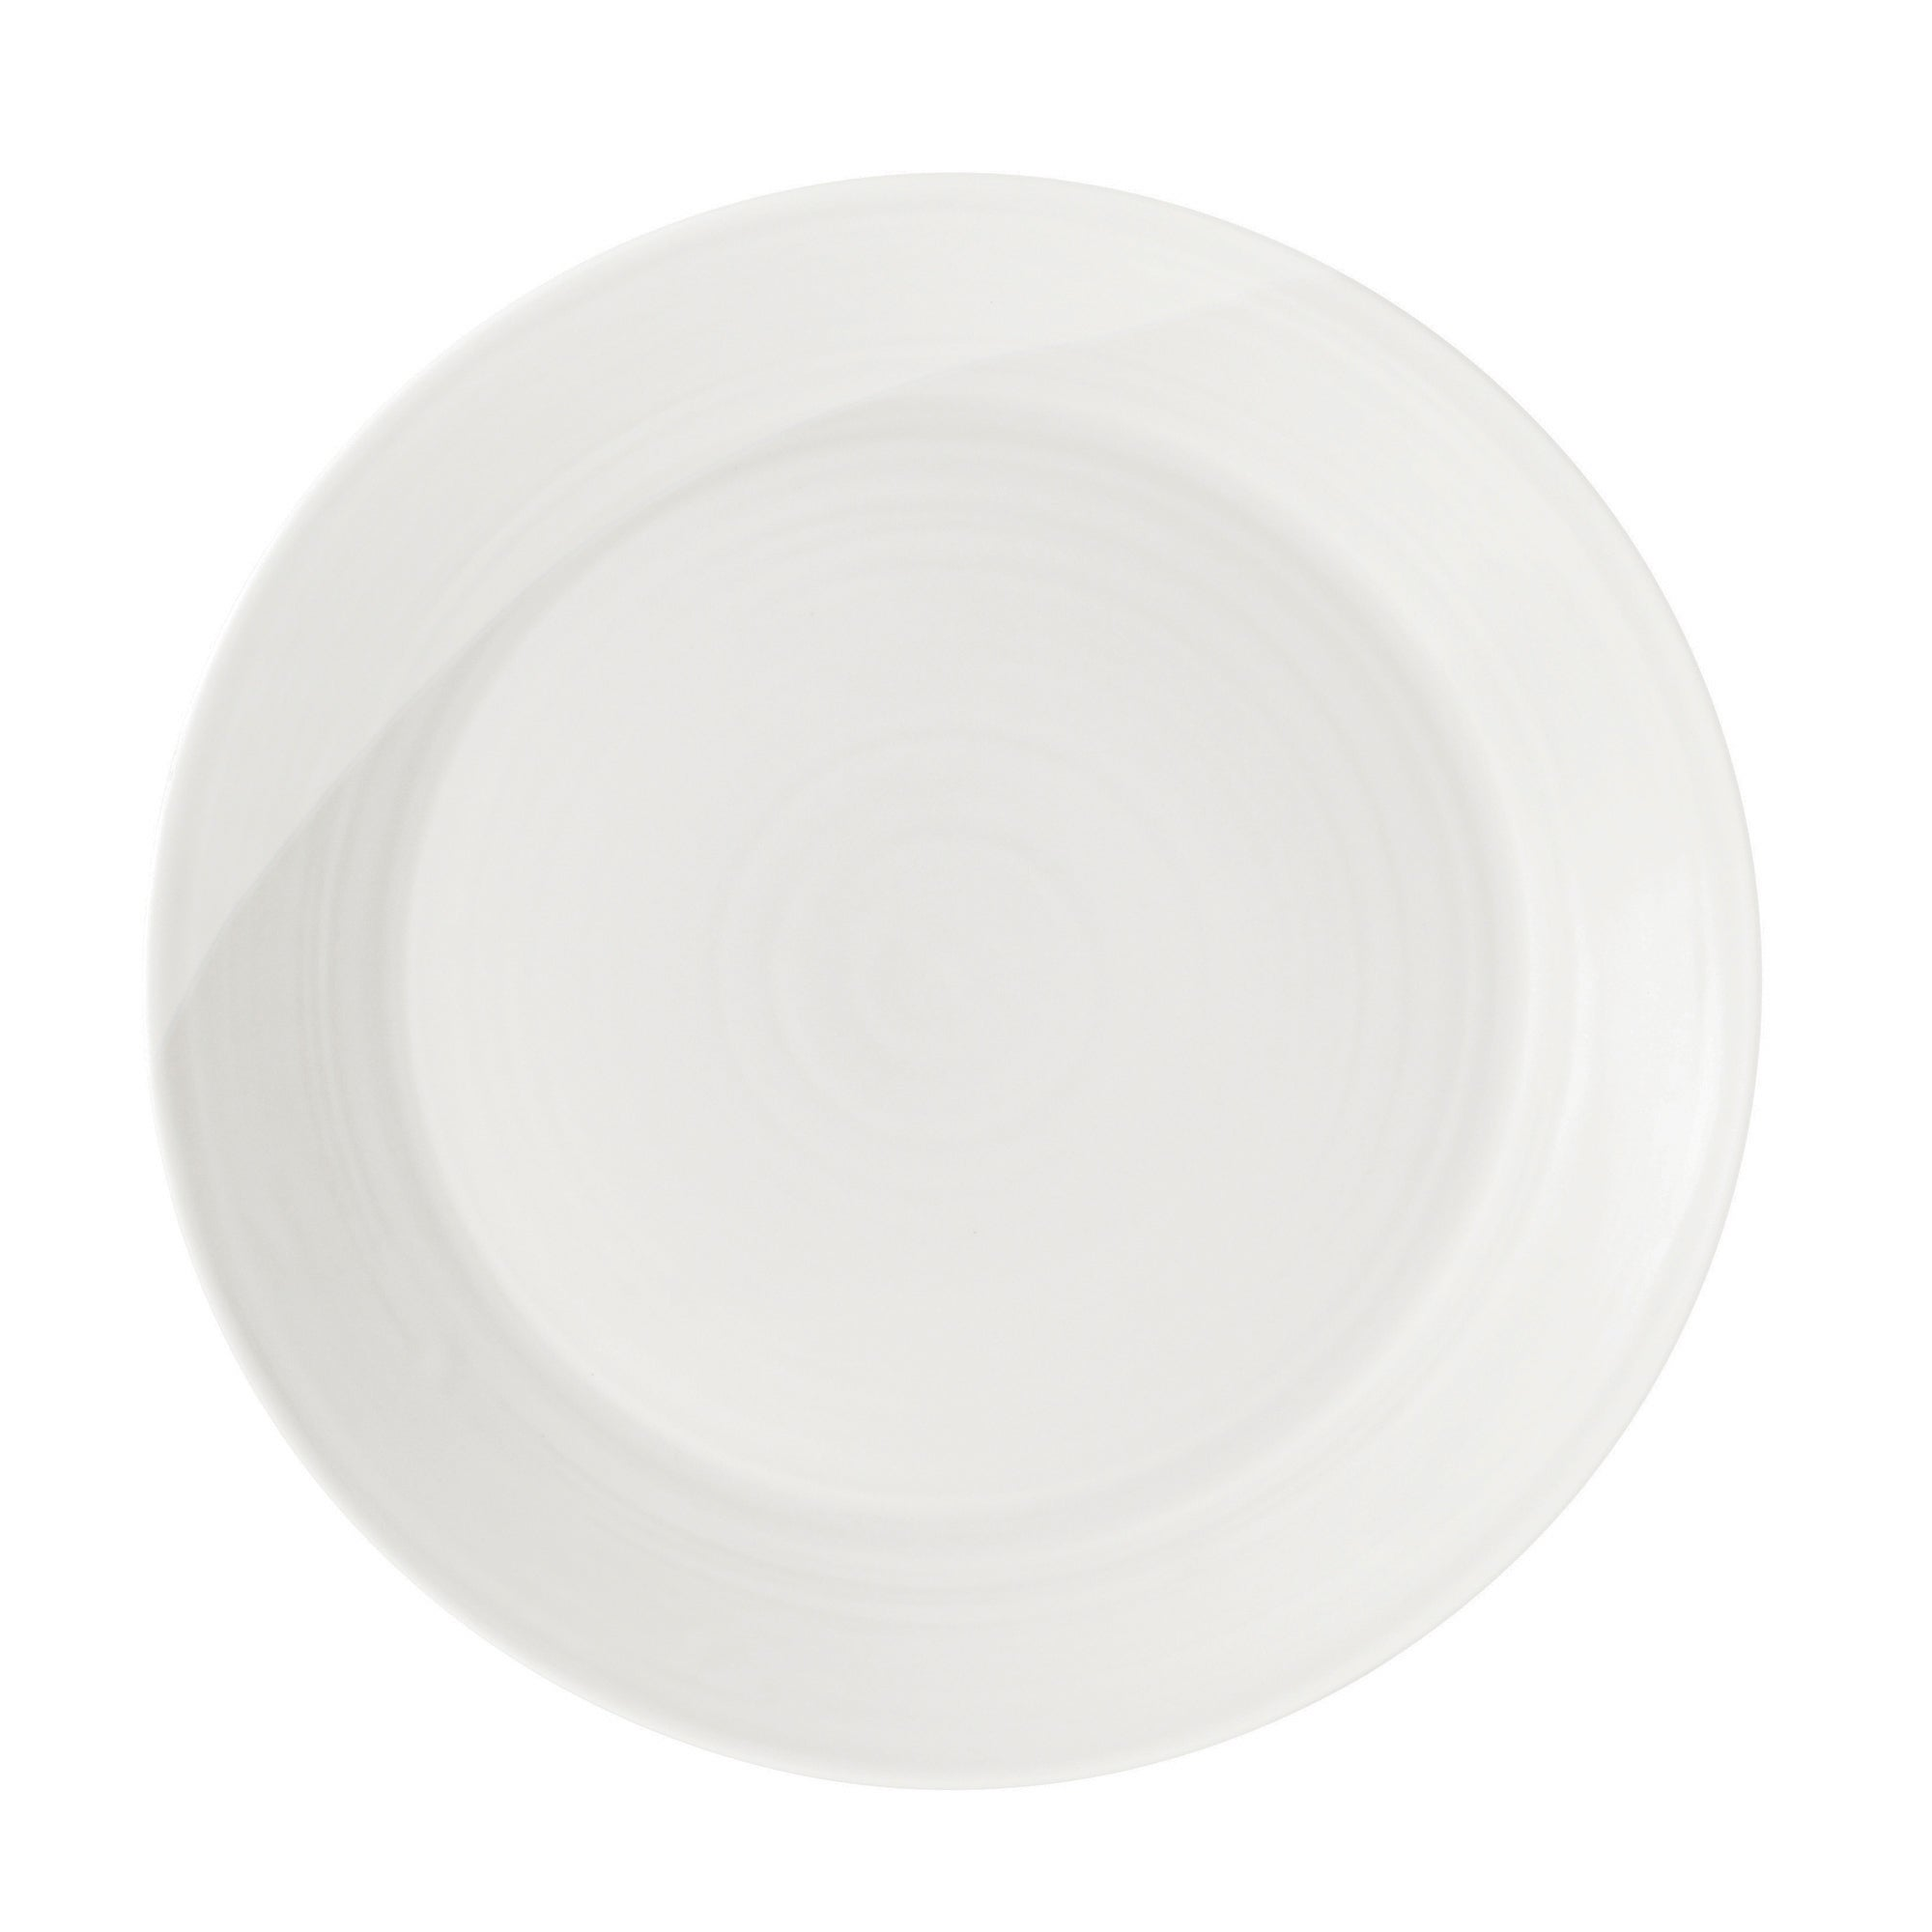 Royal Doulton White 1815 Collection Dinner Plate